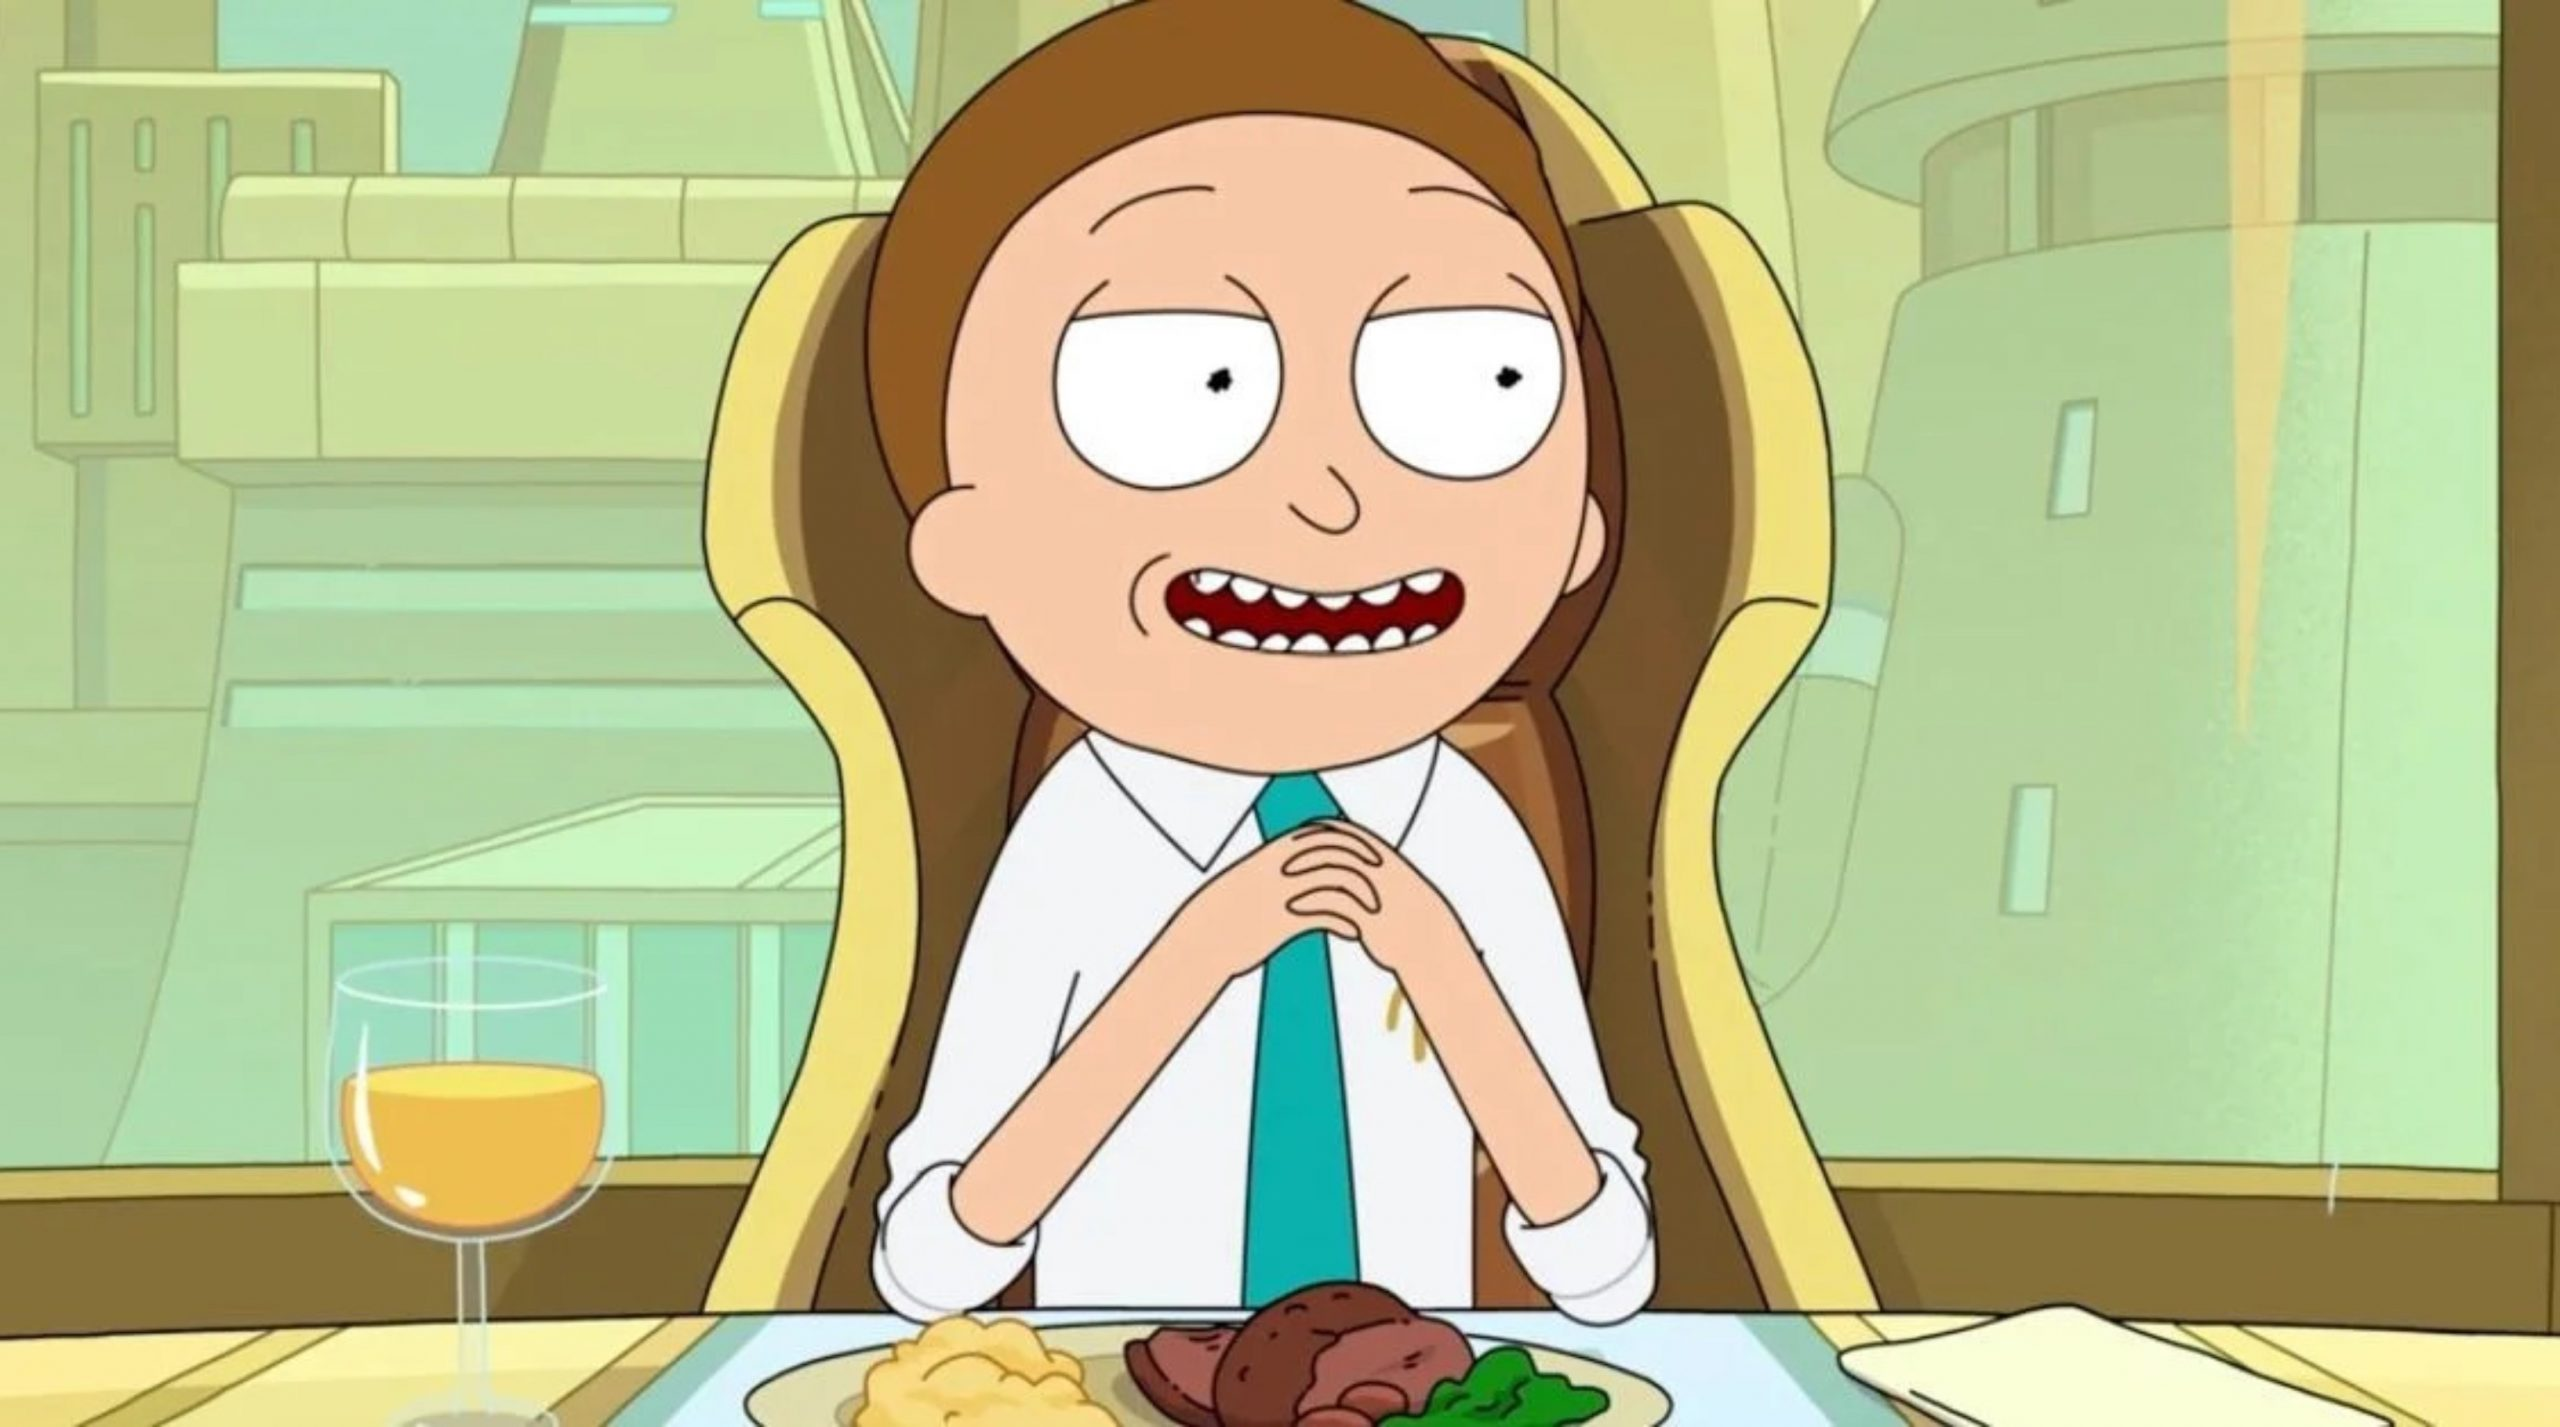 'Rick and Morty': 1 Harry Potter Actor Was Originally Supposed to Play Morty in the Live-Action